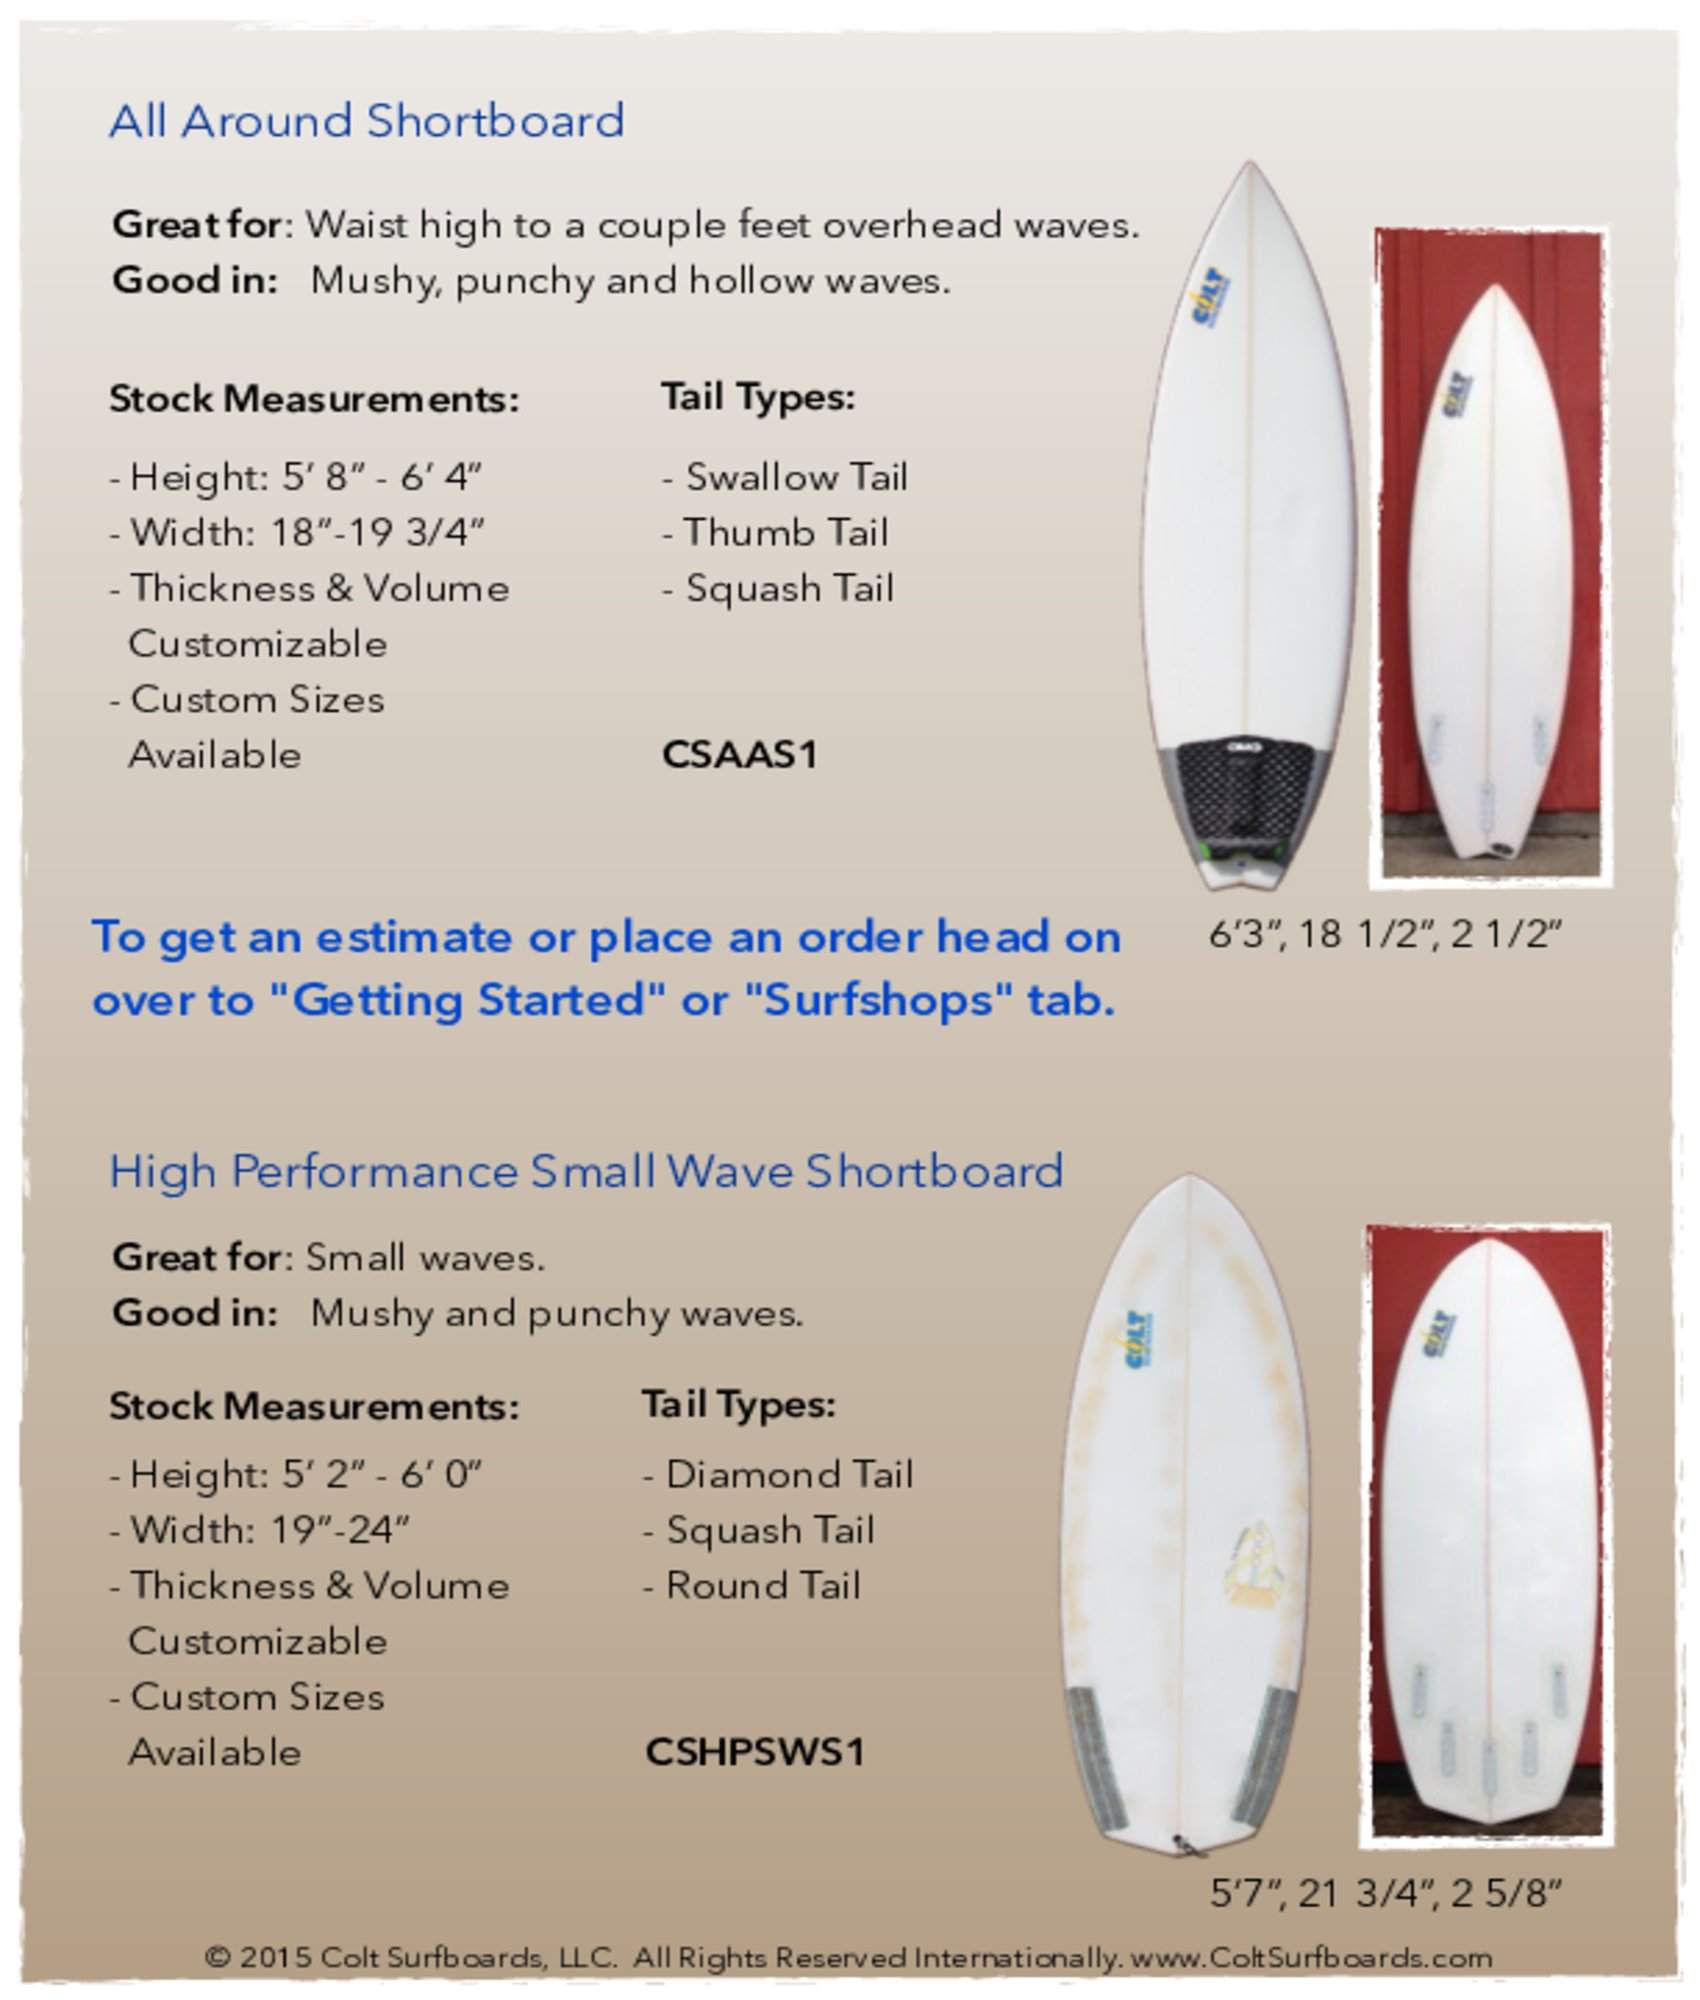 All_Around_Shortboard_and_High_Performance_Small_Wave_Shortboard_Surfboard_tab © 2015 Colt Surfboards LLC All rights reserved internationally 4